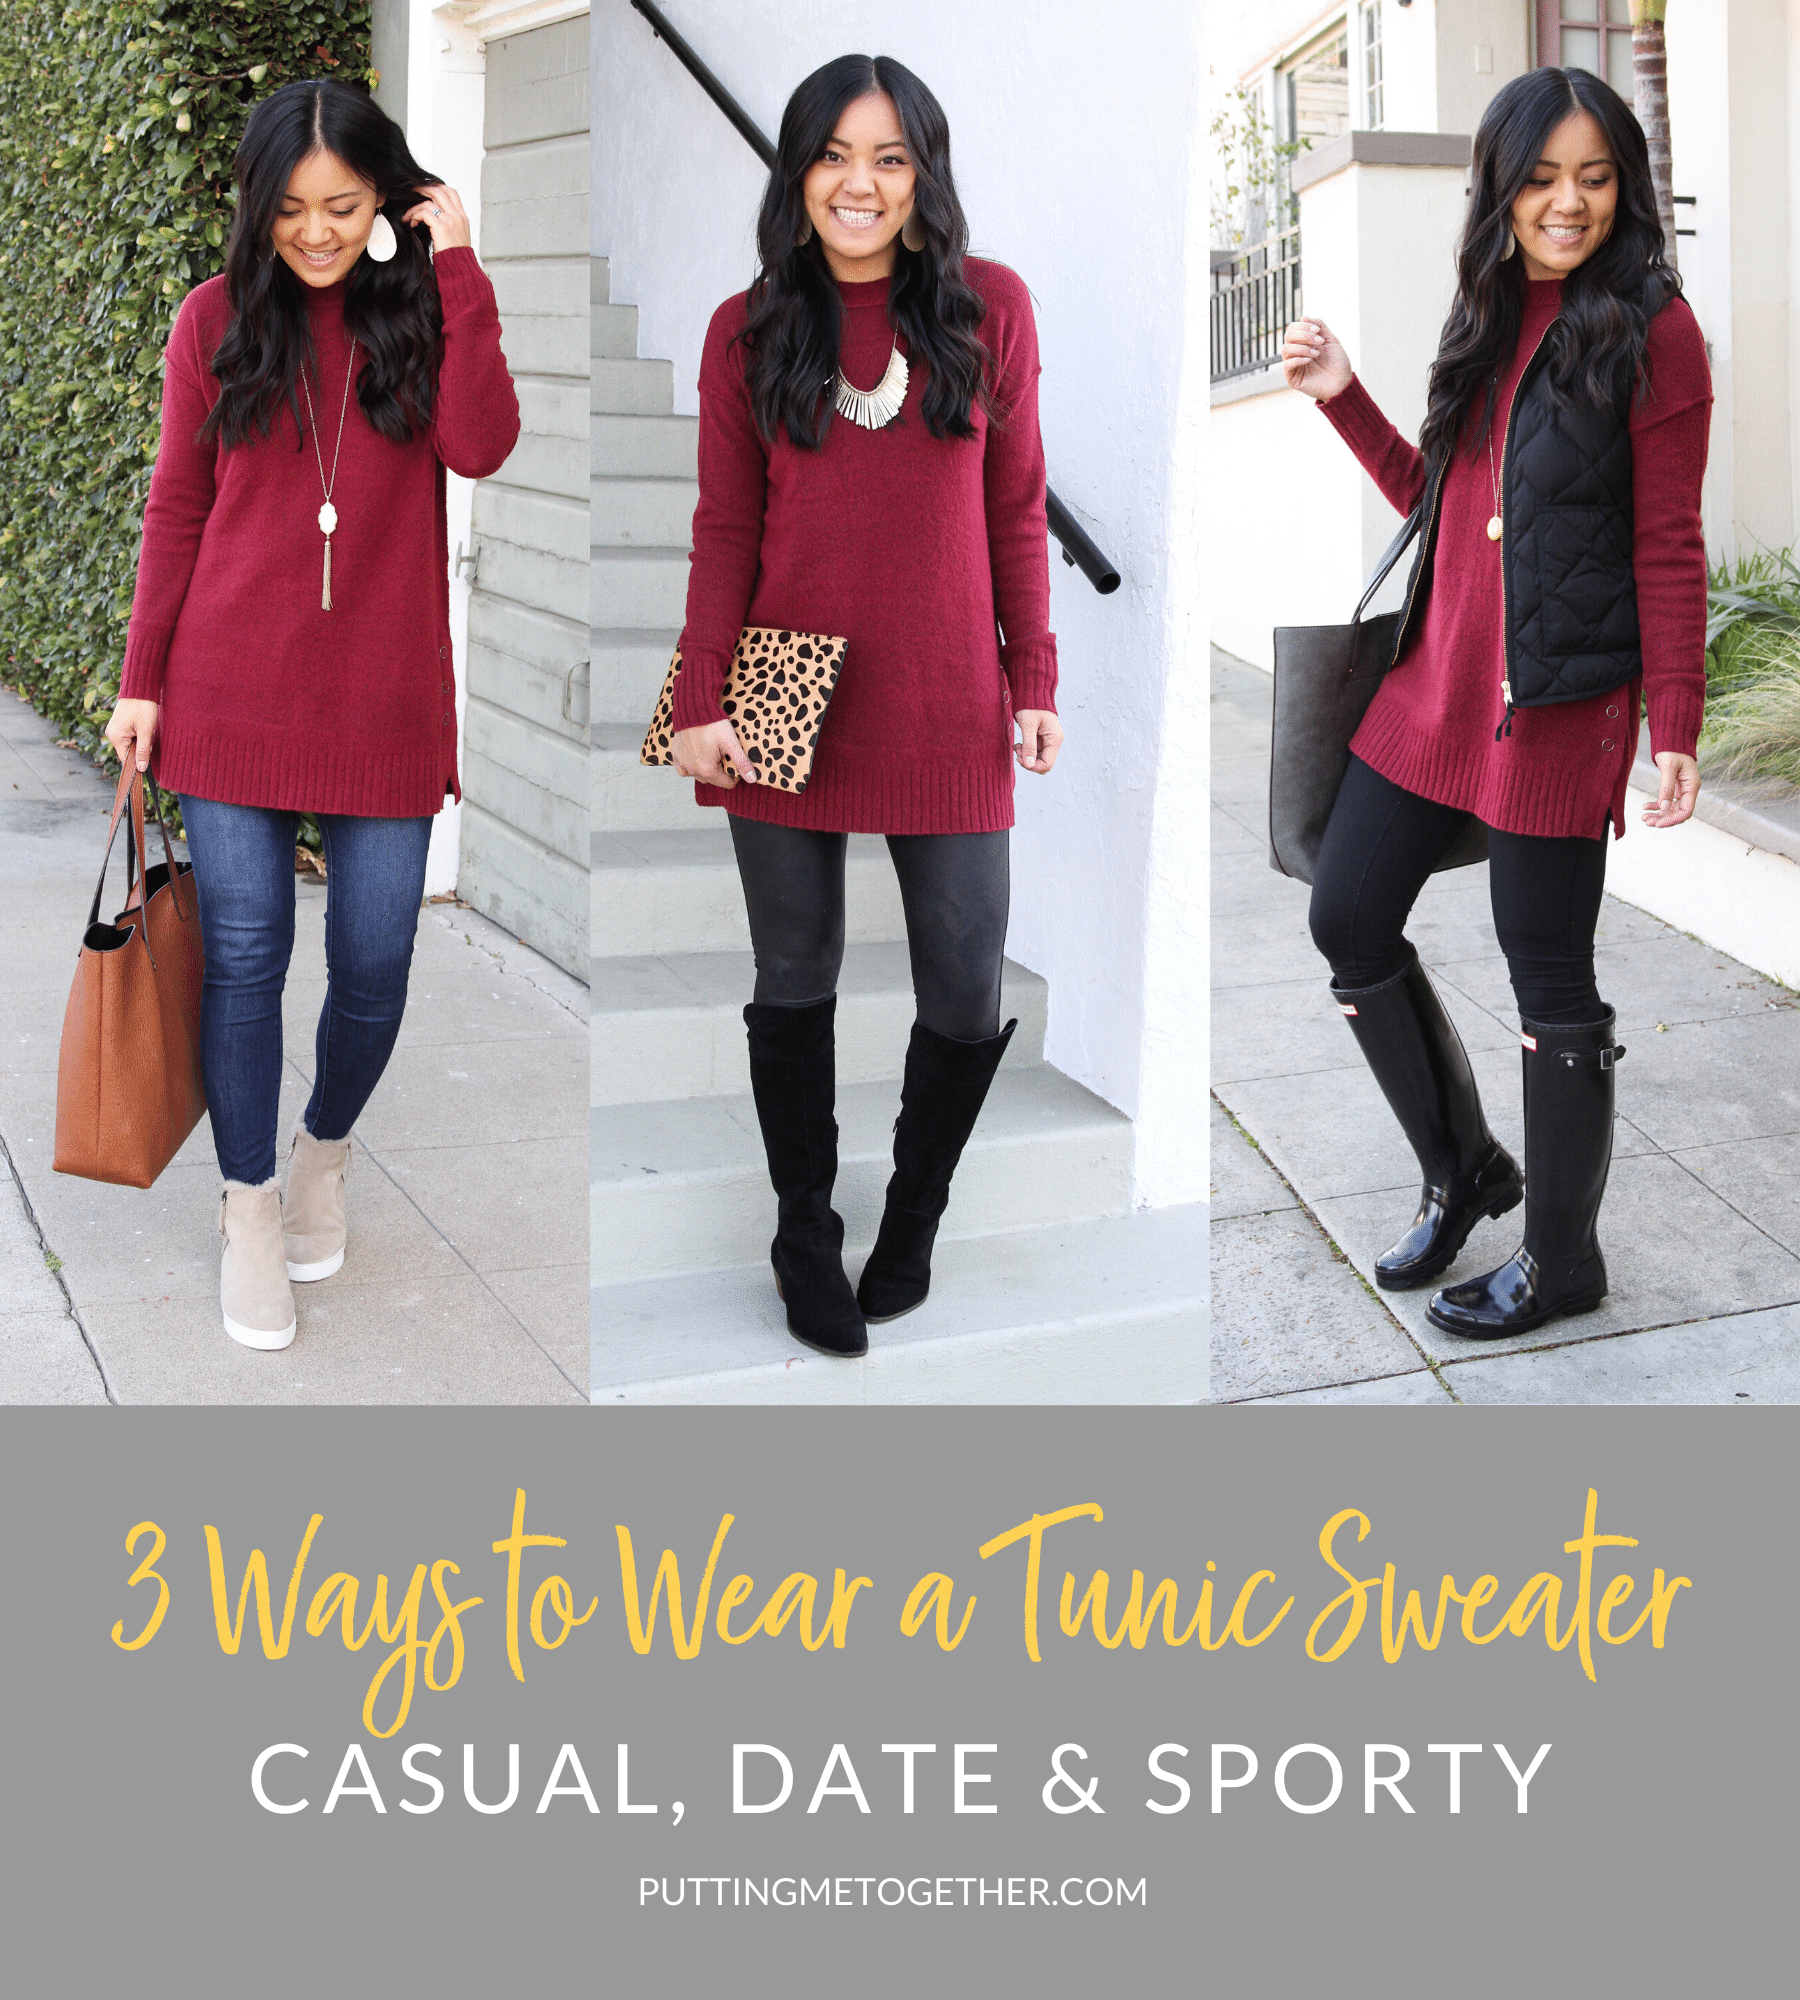 3 WAYS TO WEAR A TUNIC SWEATER